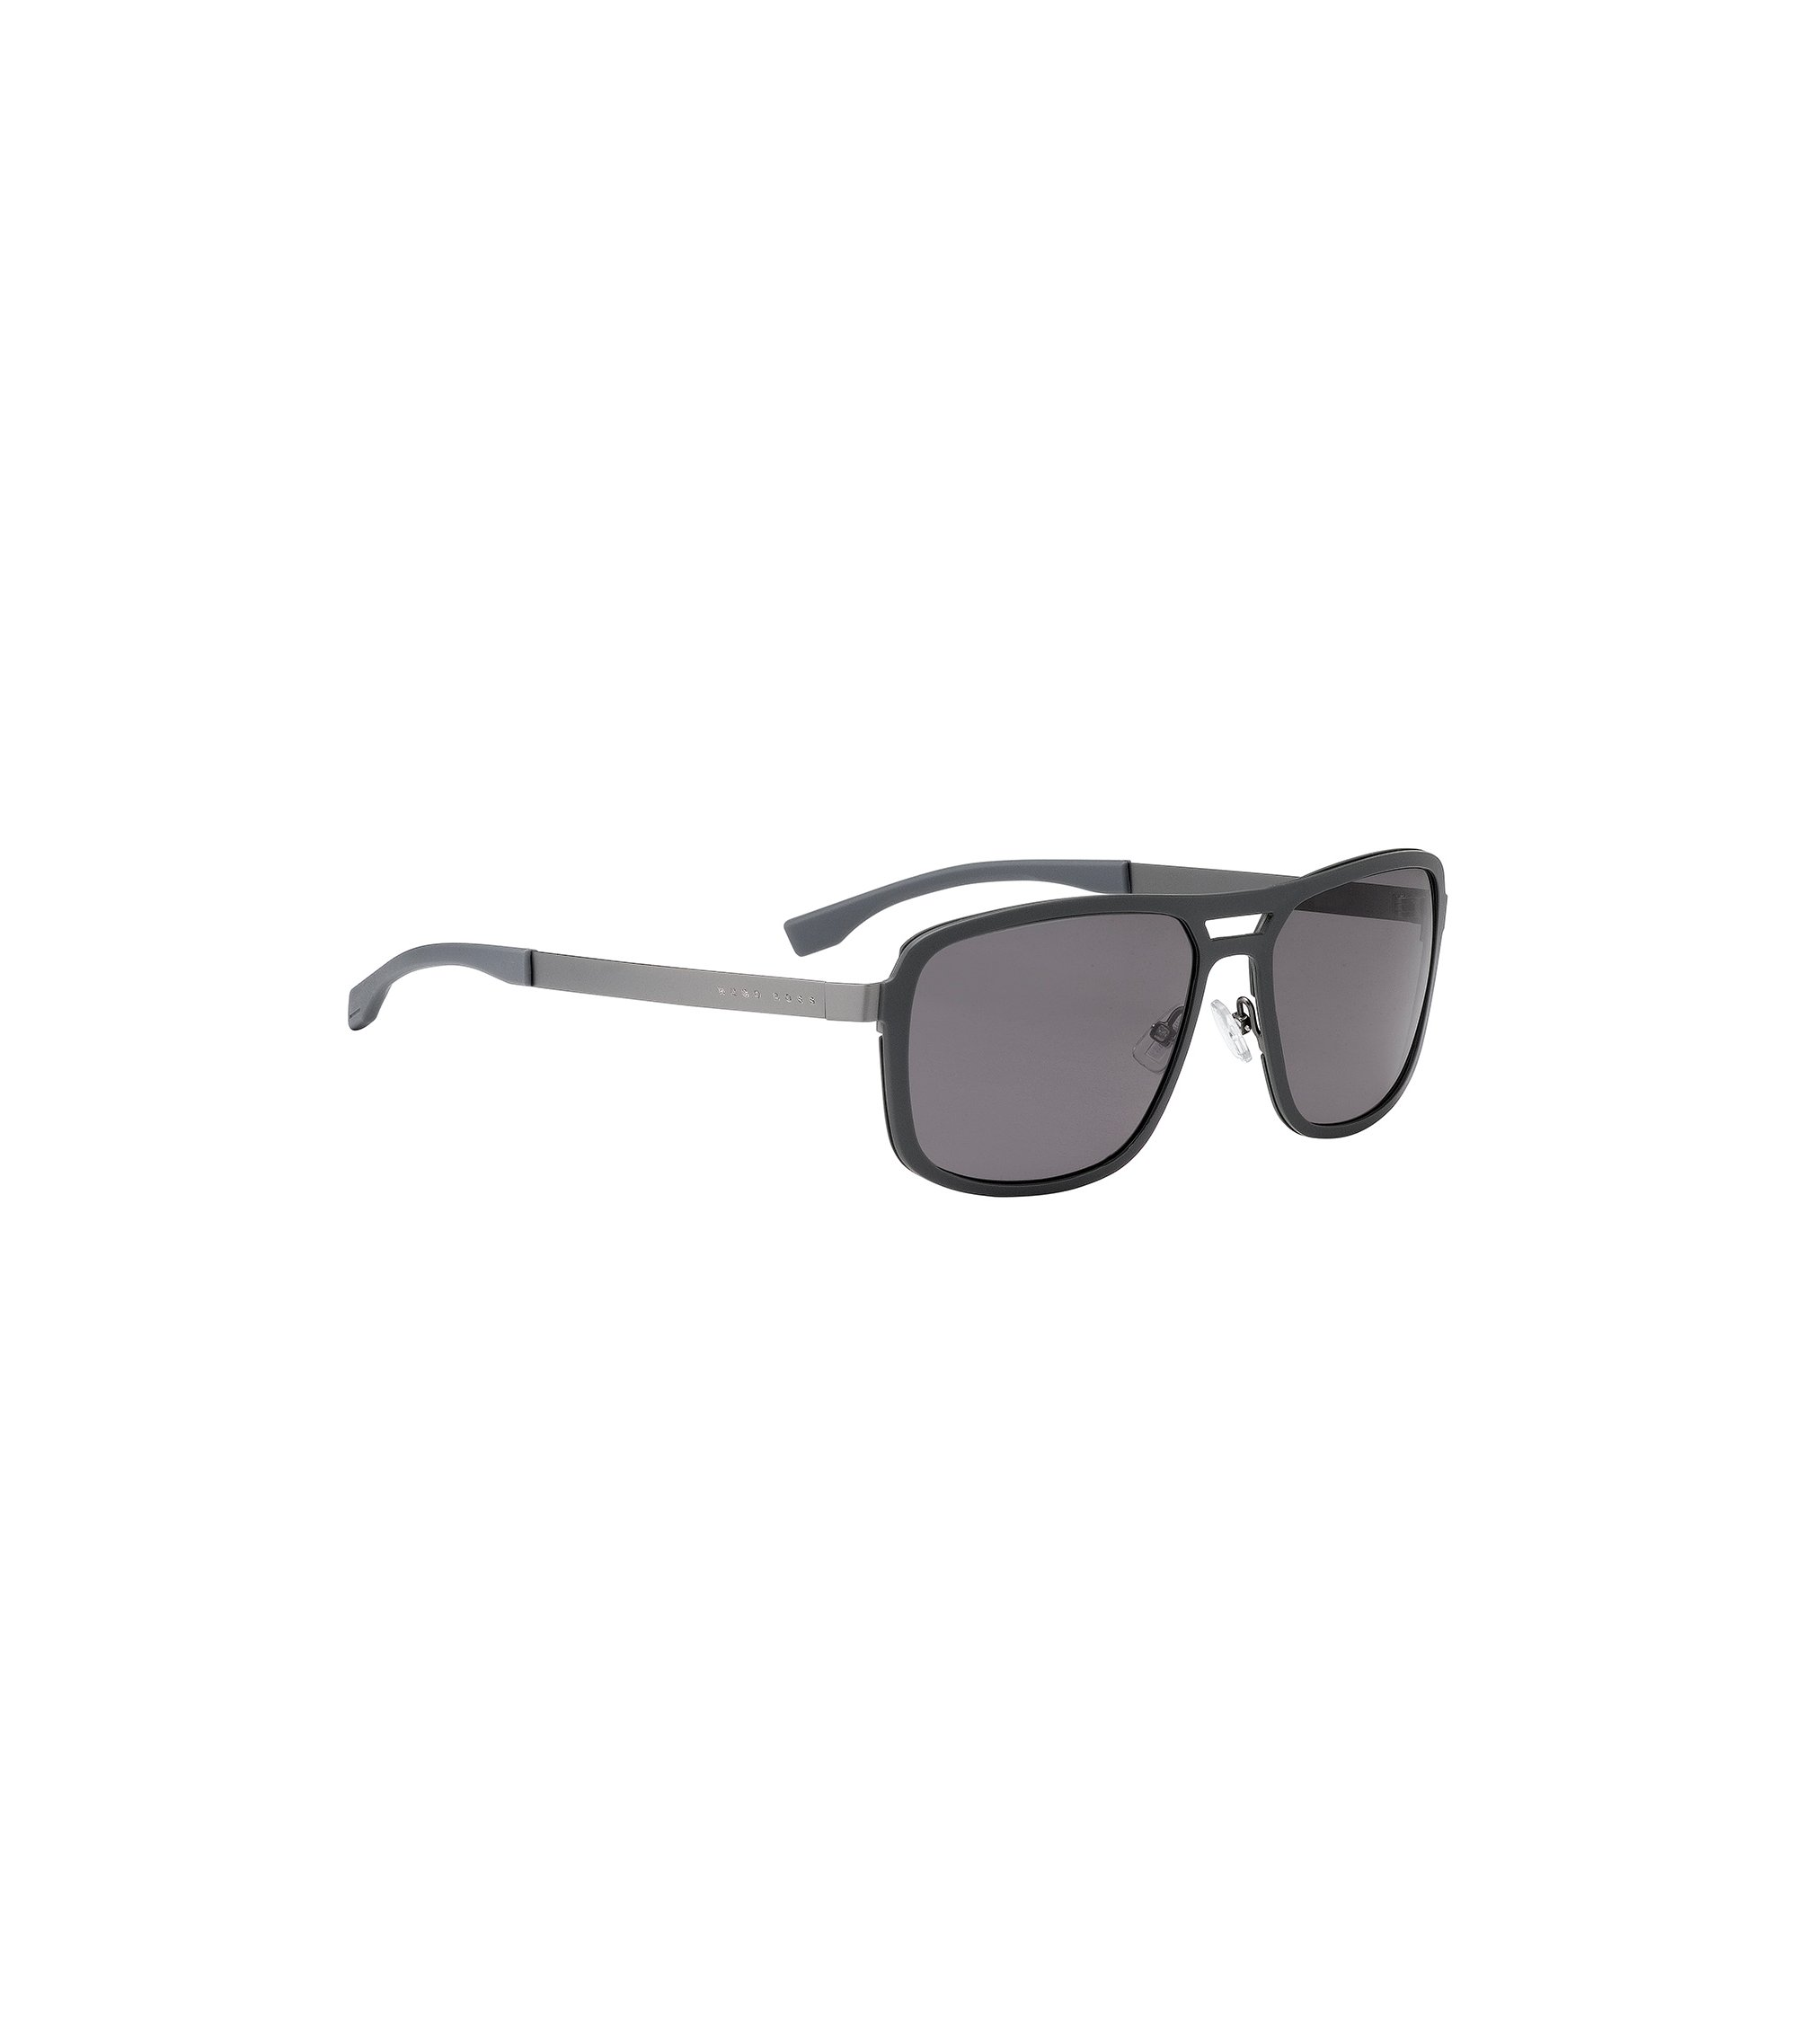 Sunglasses: 'BOSS 0724/S', Assorted-Pre-Pack